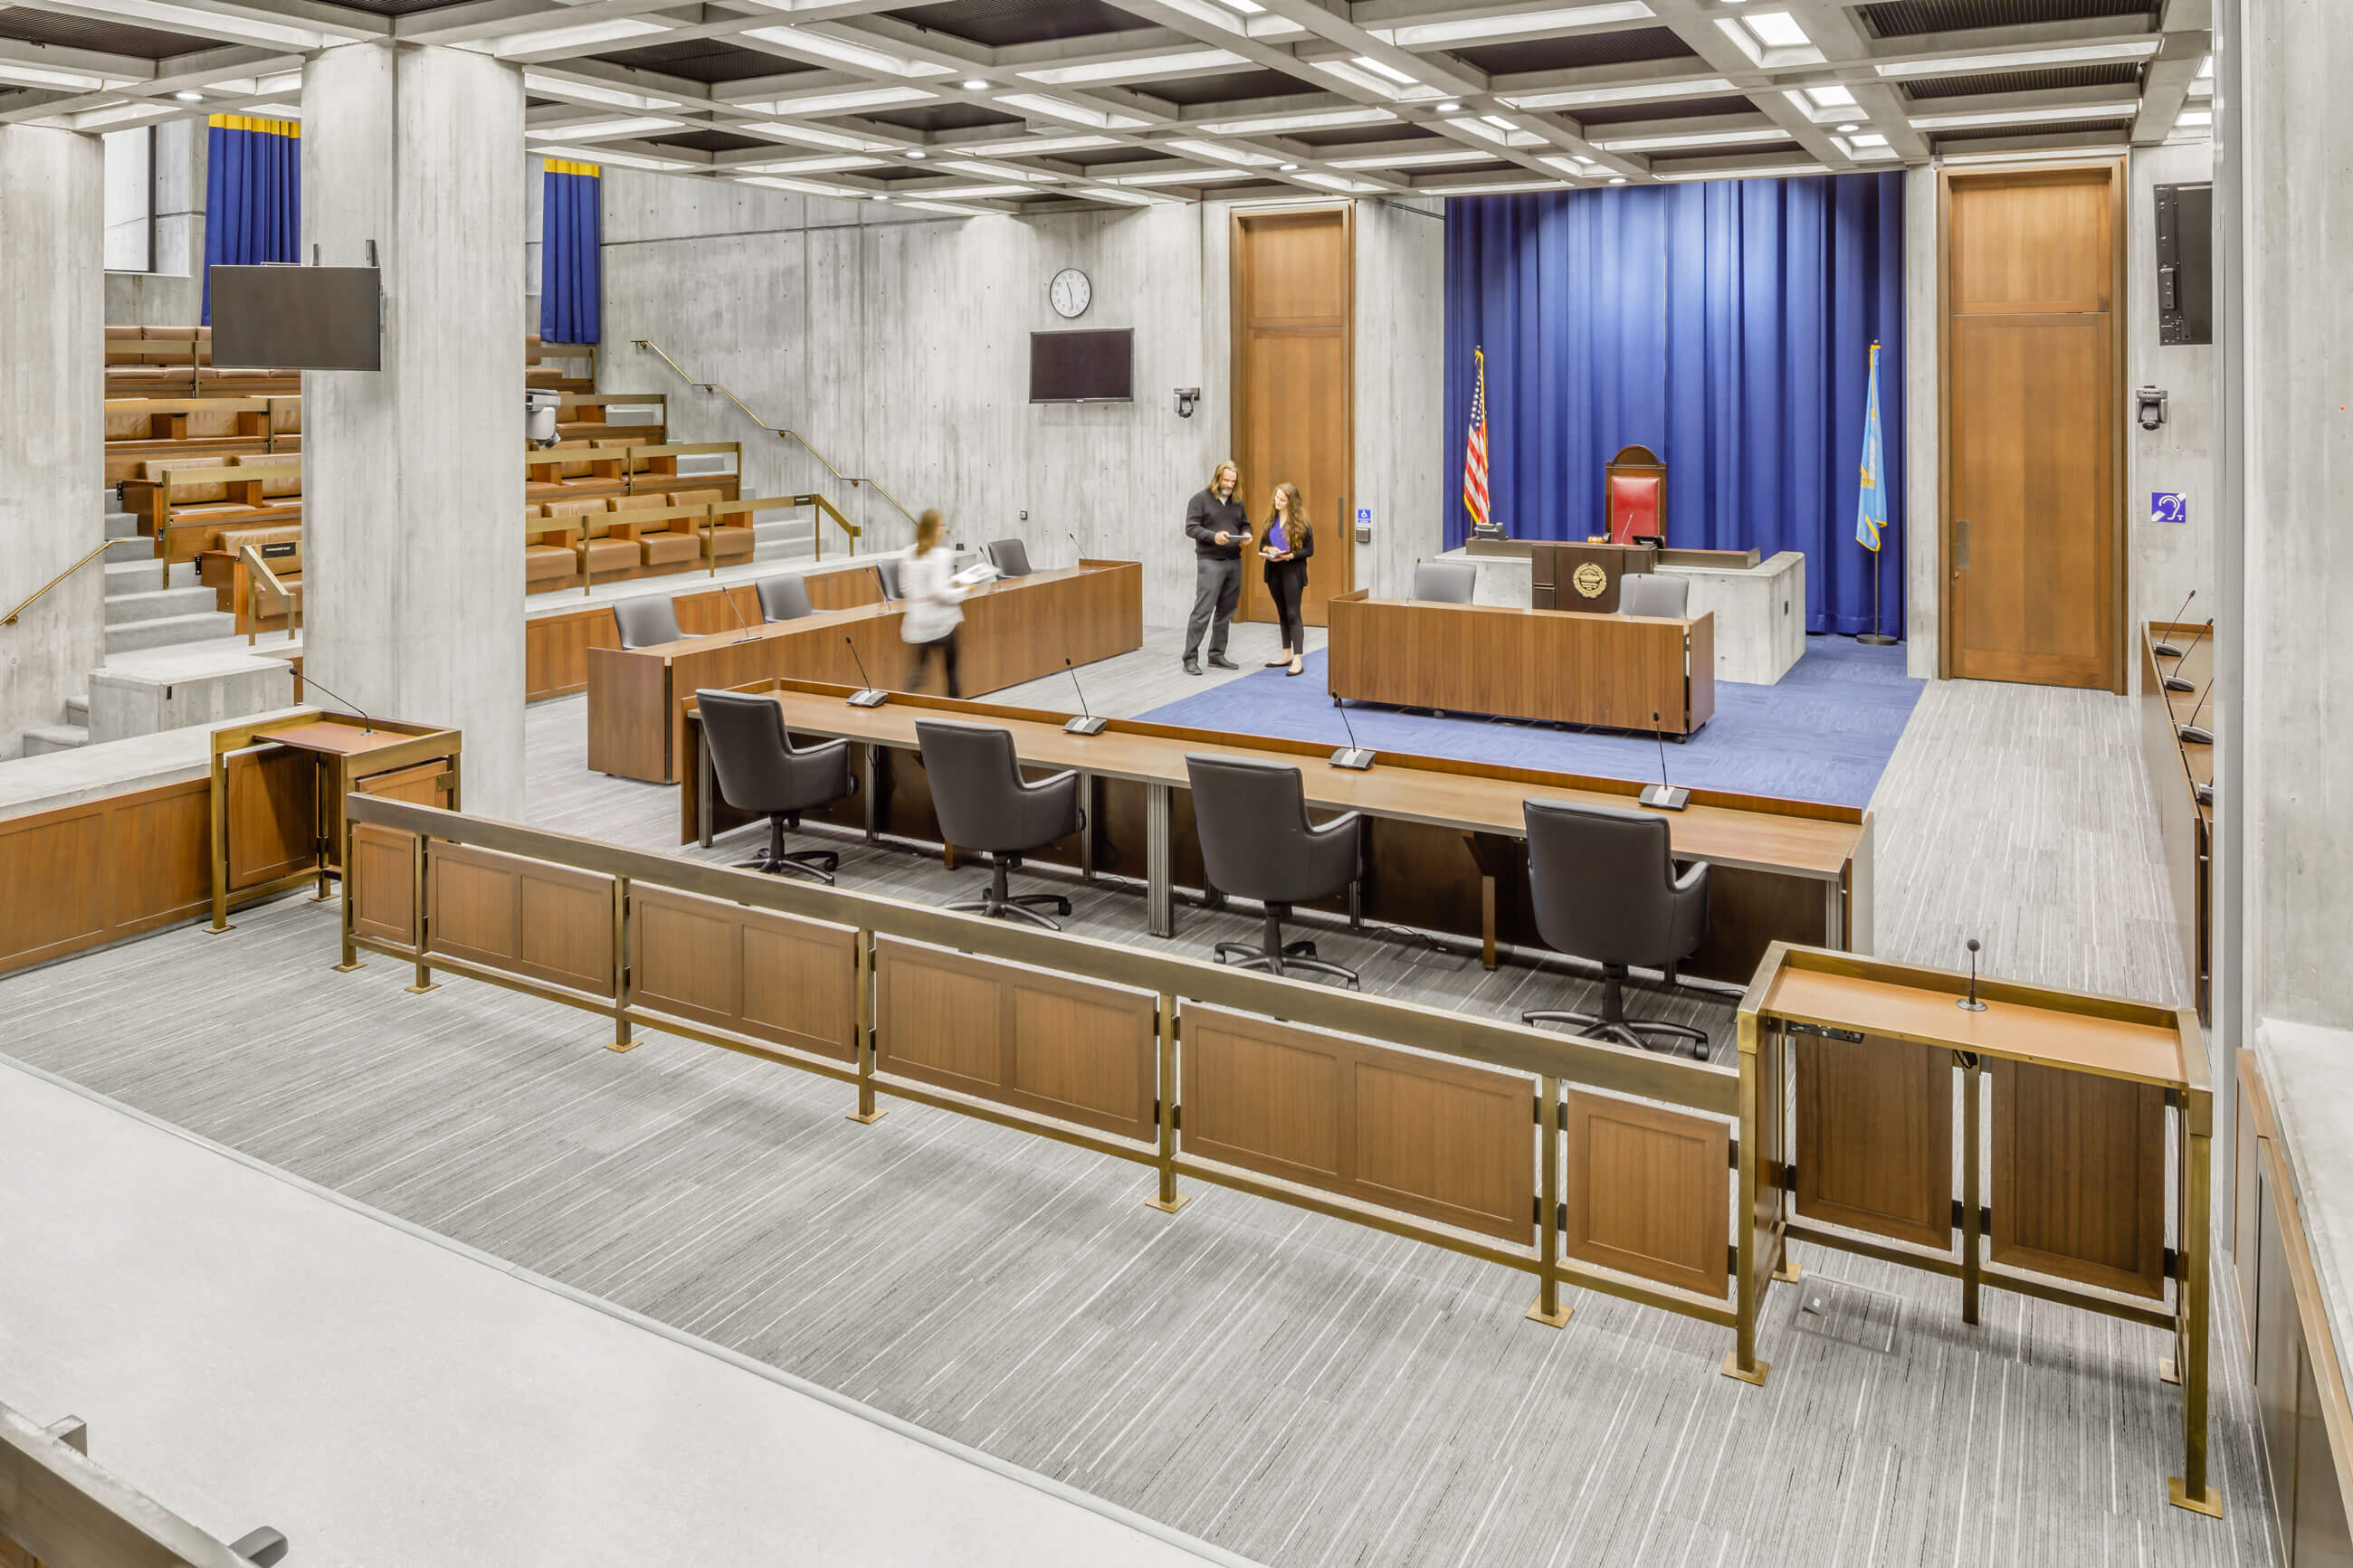 Interior view of Boston City Hall Council Chambers, showing the poured-in-place concrete walls and concrete ceiling beams, typical of Brutalist architecture